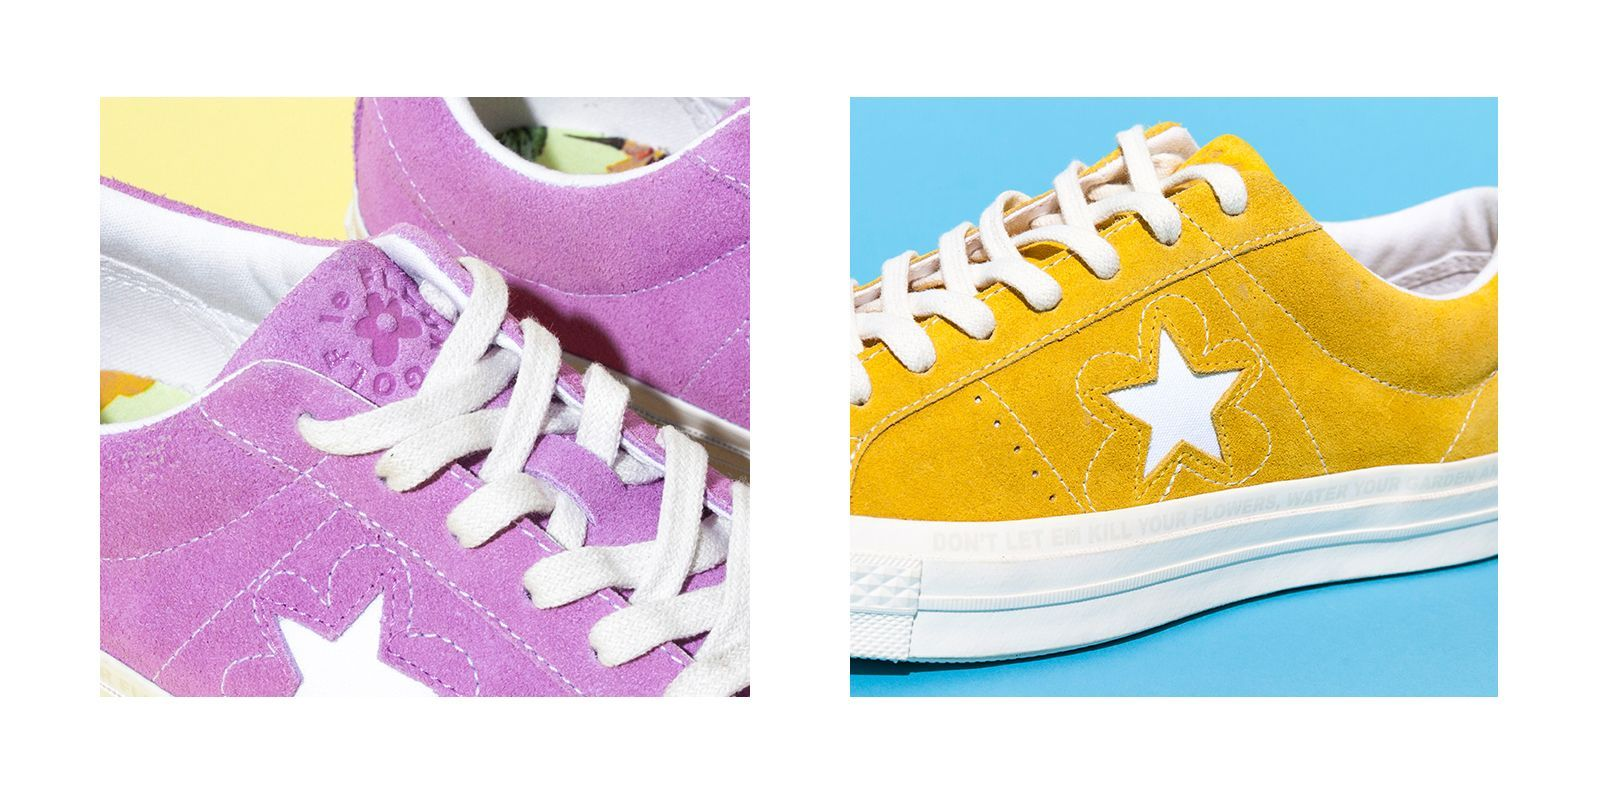 39eb62e3c244 Converse One Star x Golf le Fleur Shoes Logo Closeup ...